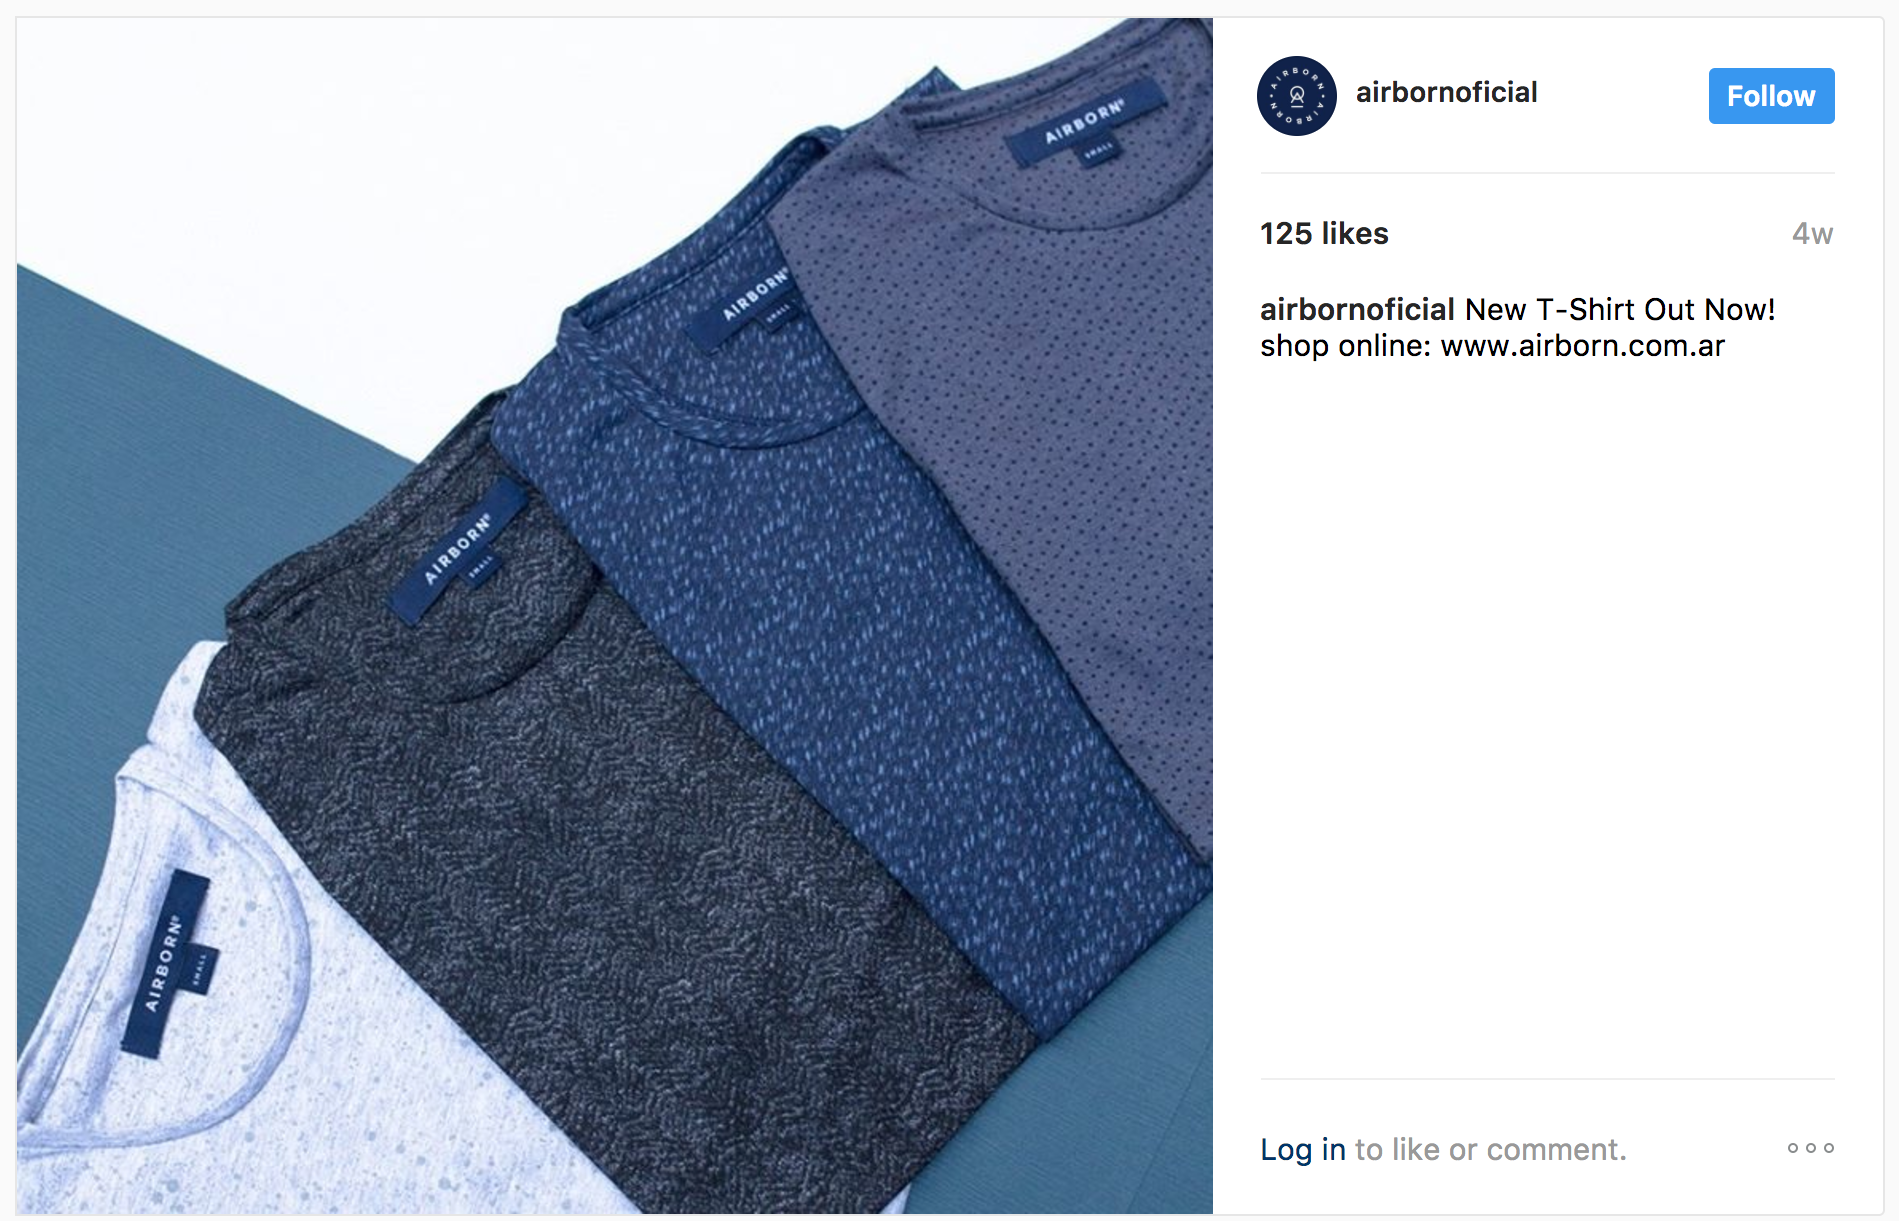 The E-commerce Clothing Industry: How to leverage Social Media?